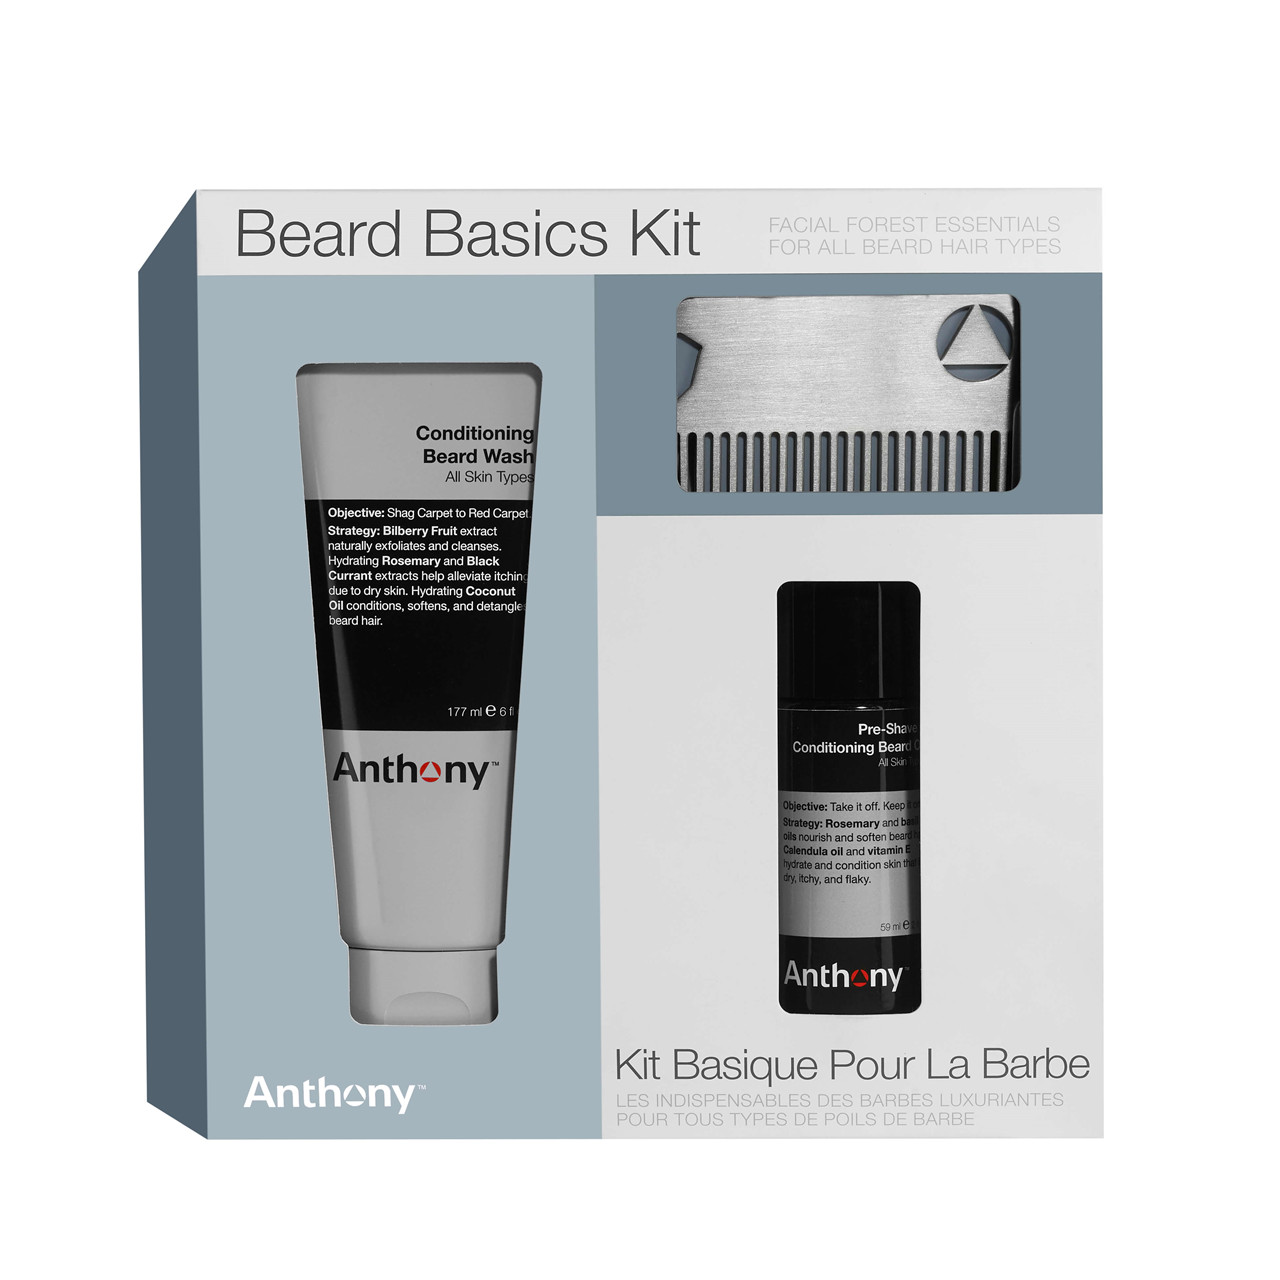 Image of Anthony Beard Basics Kit